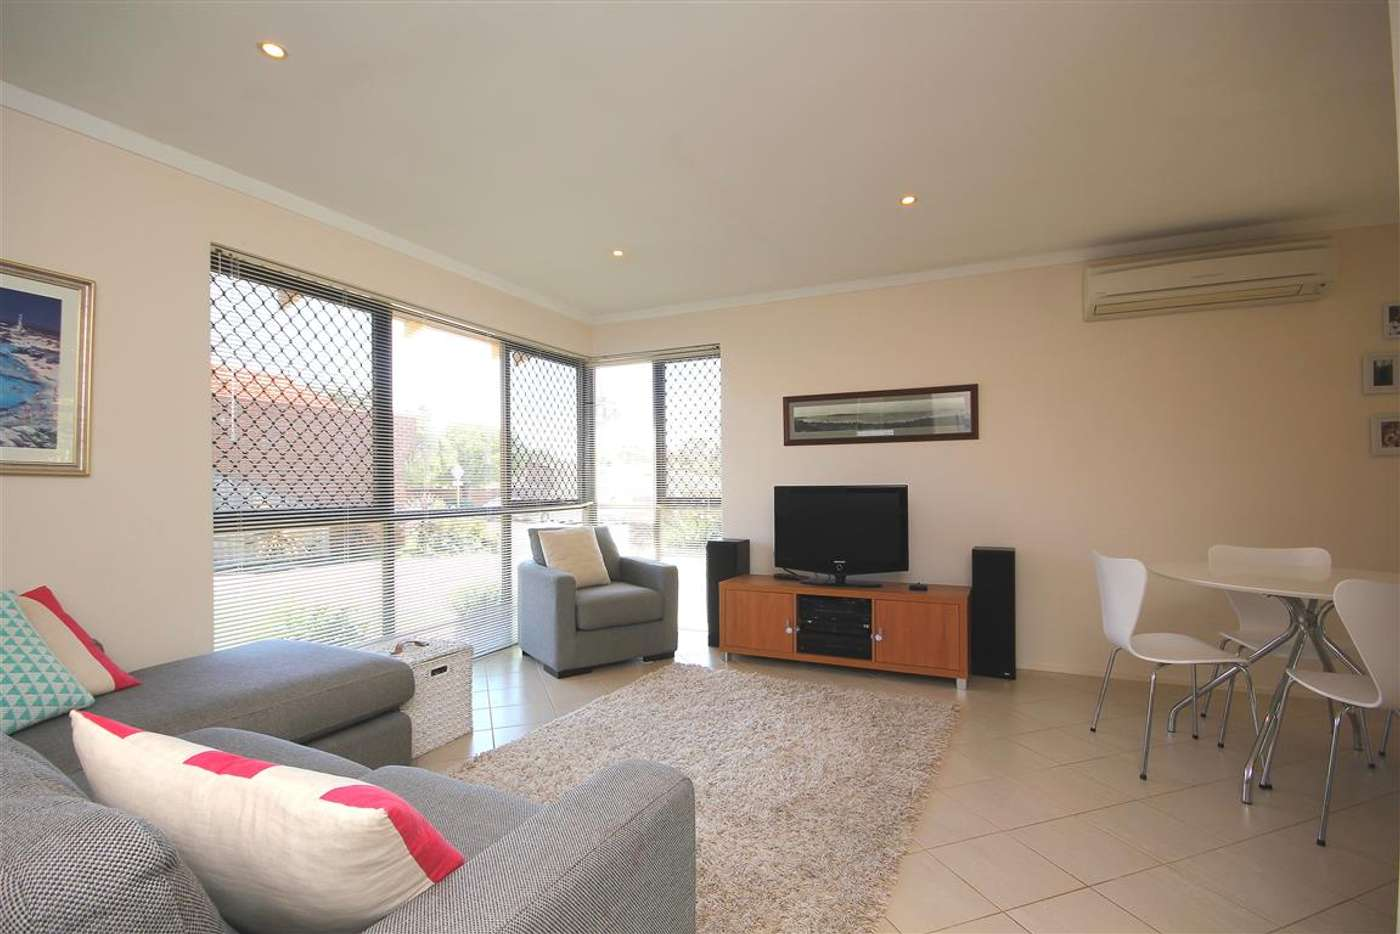 Seventh view of Homely villa listing, 1/19 ANSTEY STREET, South Perth WA 6151